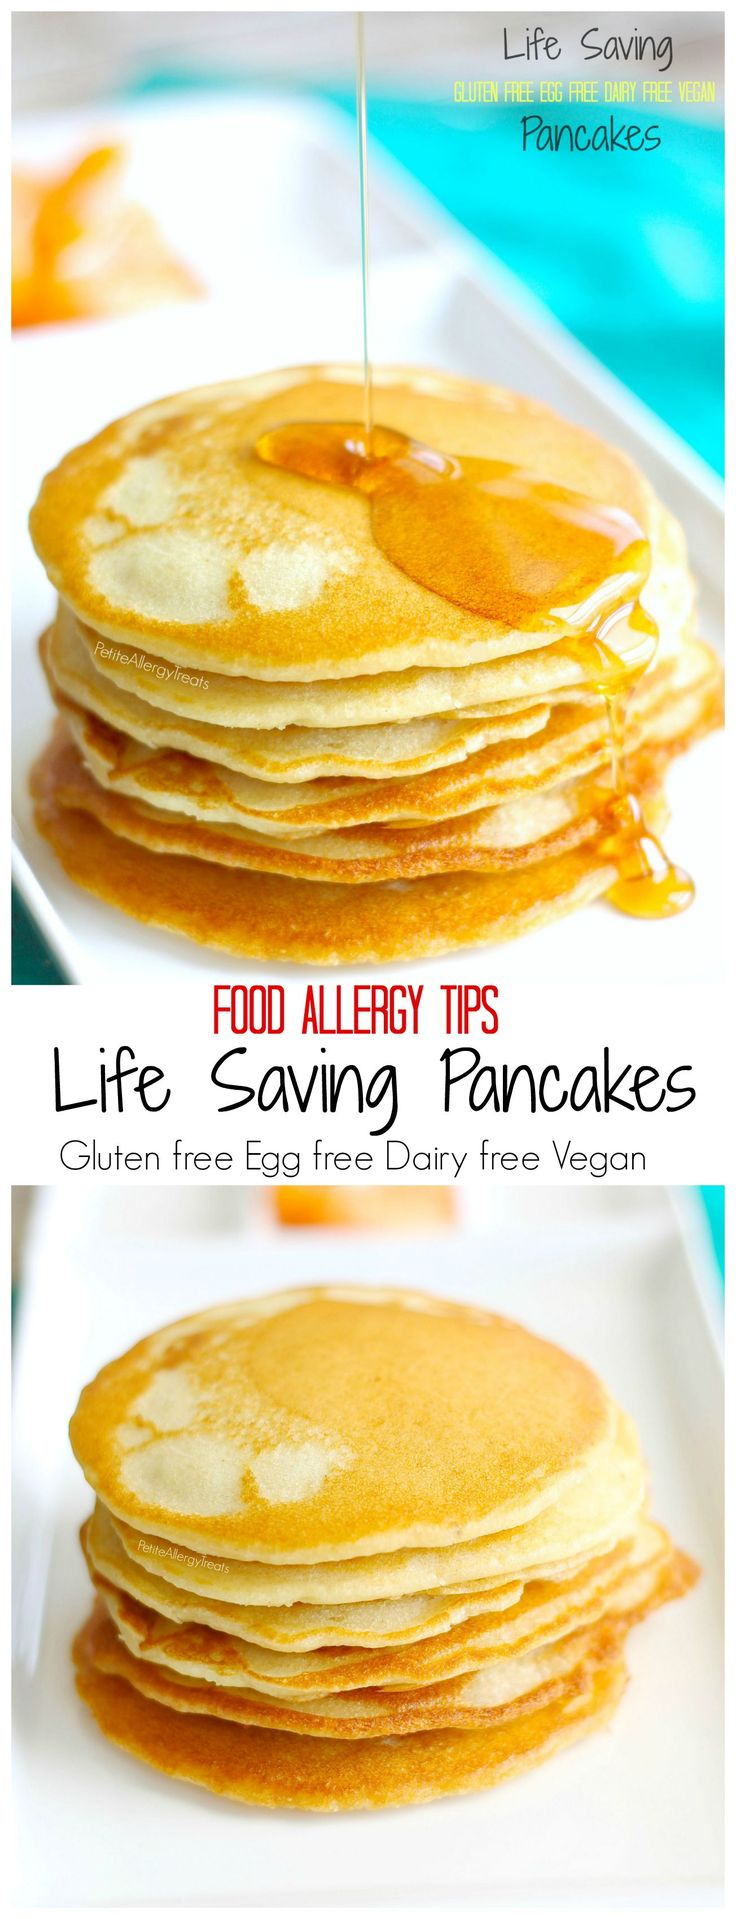 Gluten Free Egg Free Pancakes (Vegan)- Basic Life Saving baking for food allergies and tips to help- dairy free, soy free #glutenfree #recipes #healthy #gluten #recipe